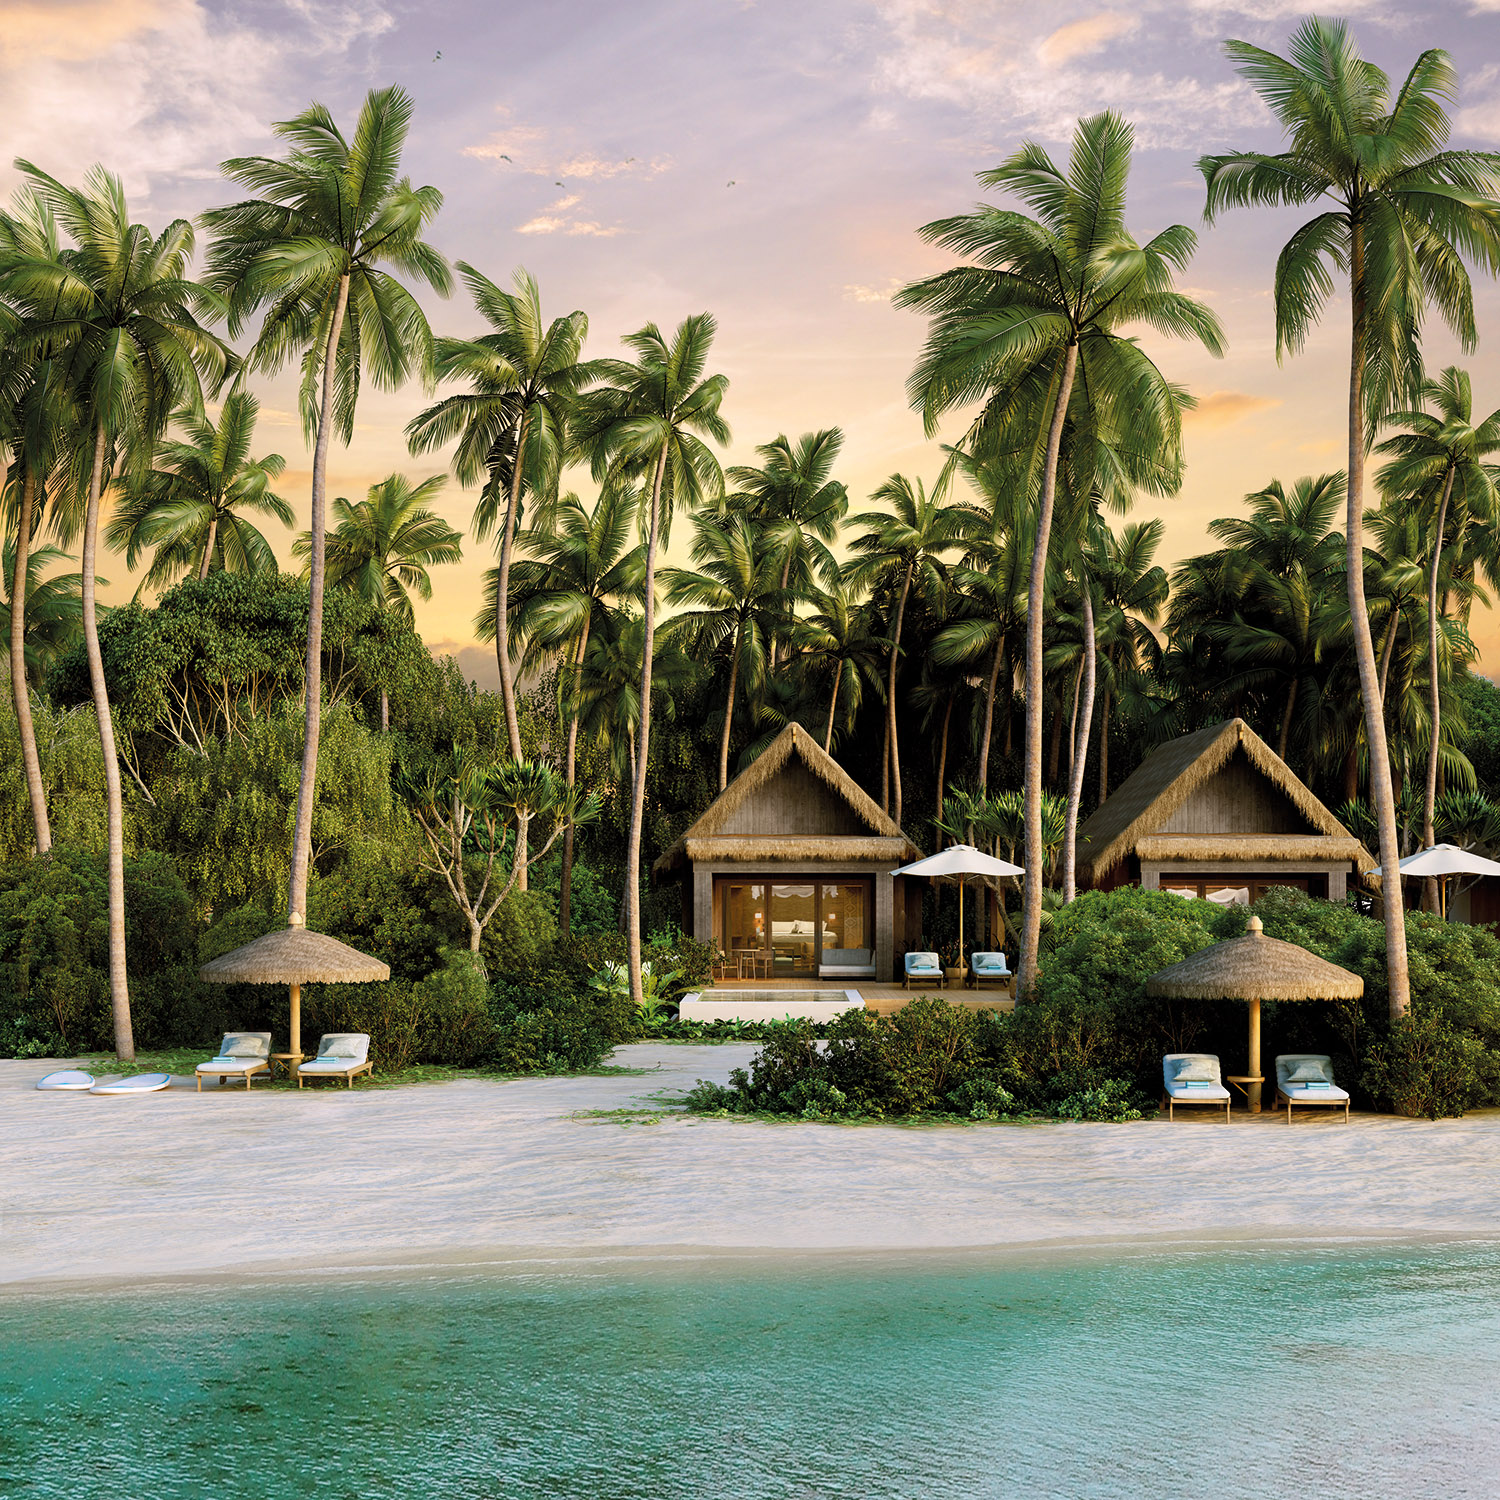 Island Time: Six Senses Fiji